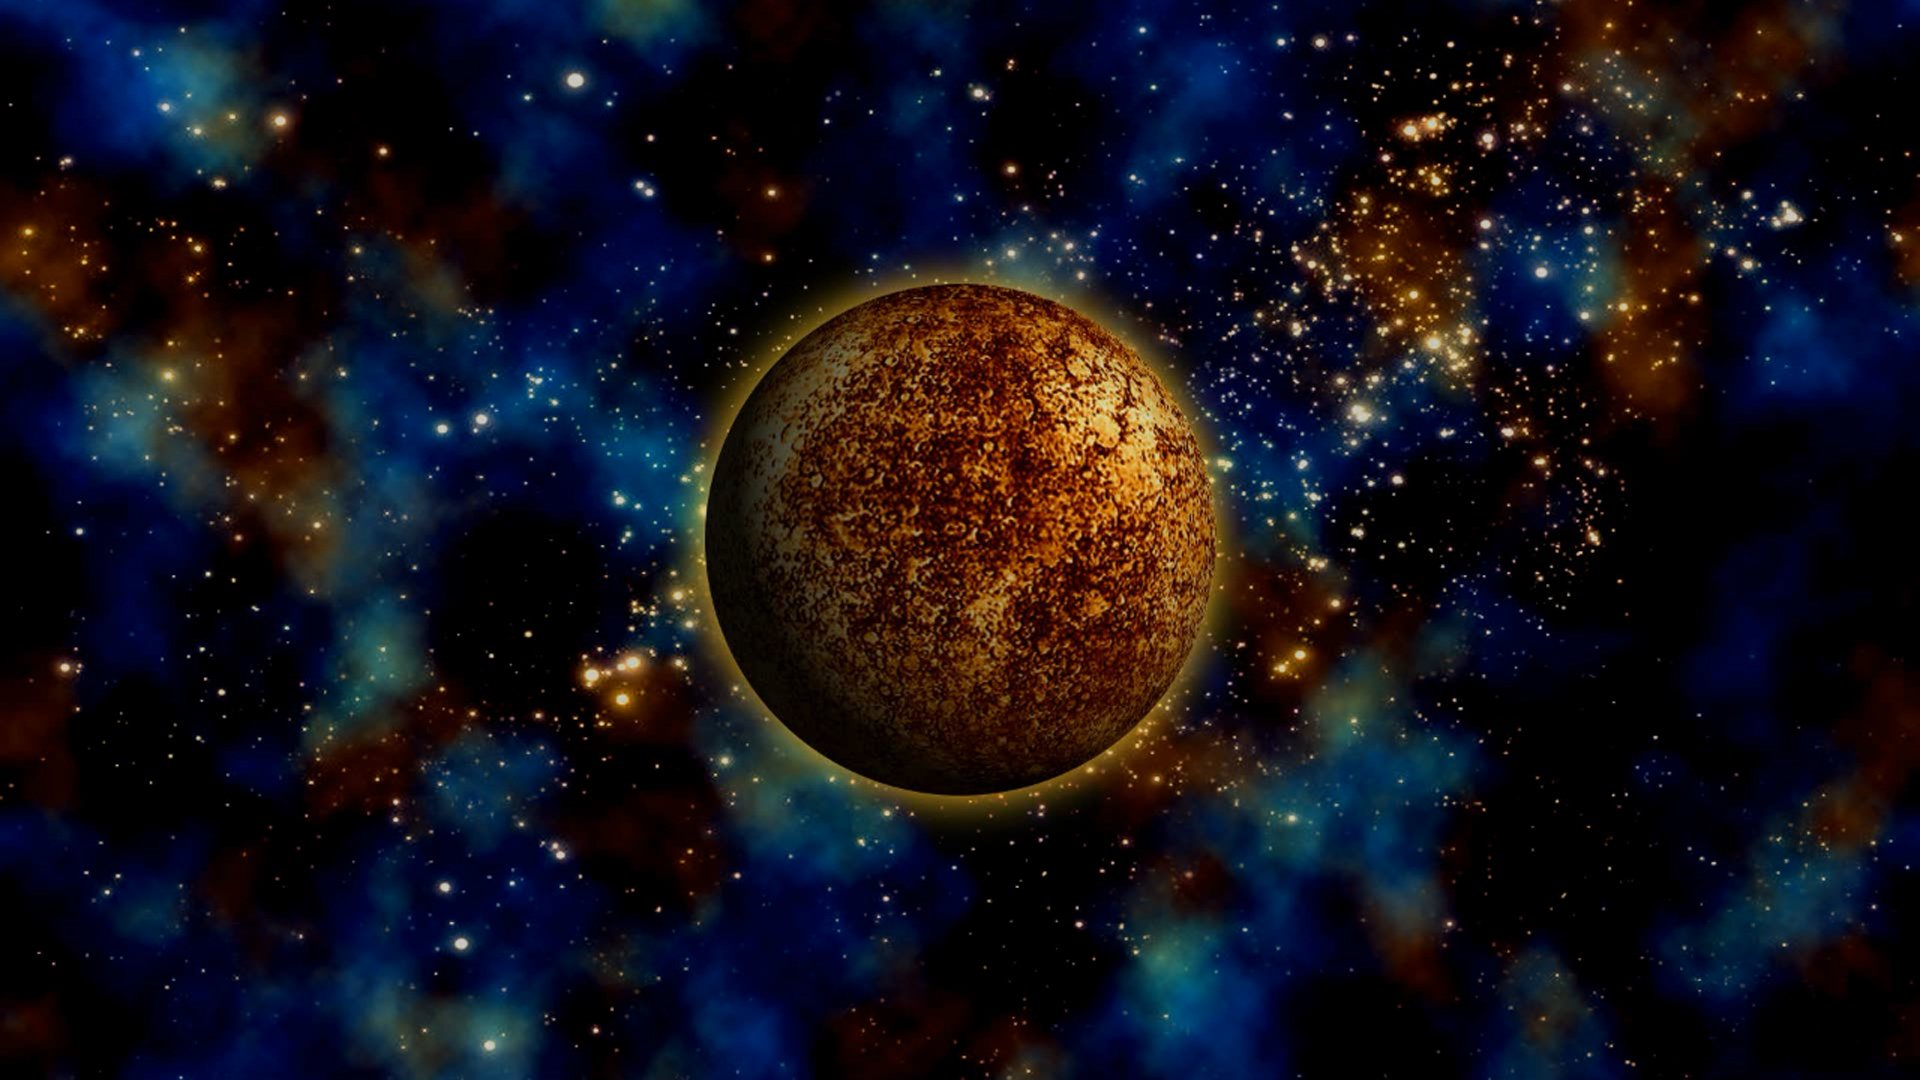 Gold Planet Hd Wallpaper Background Image 1920x1080